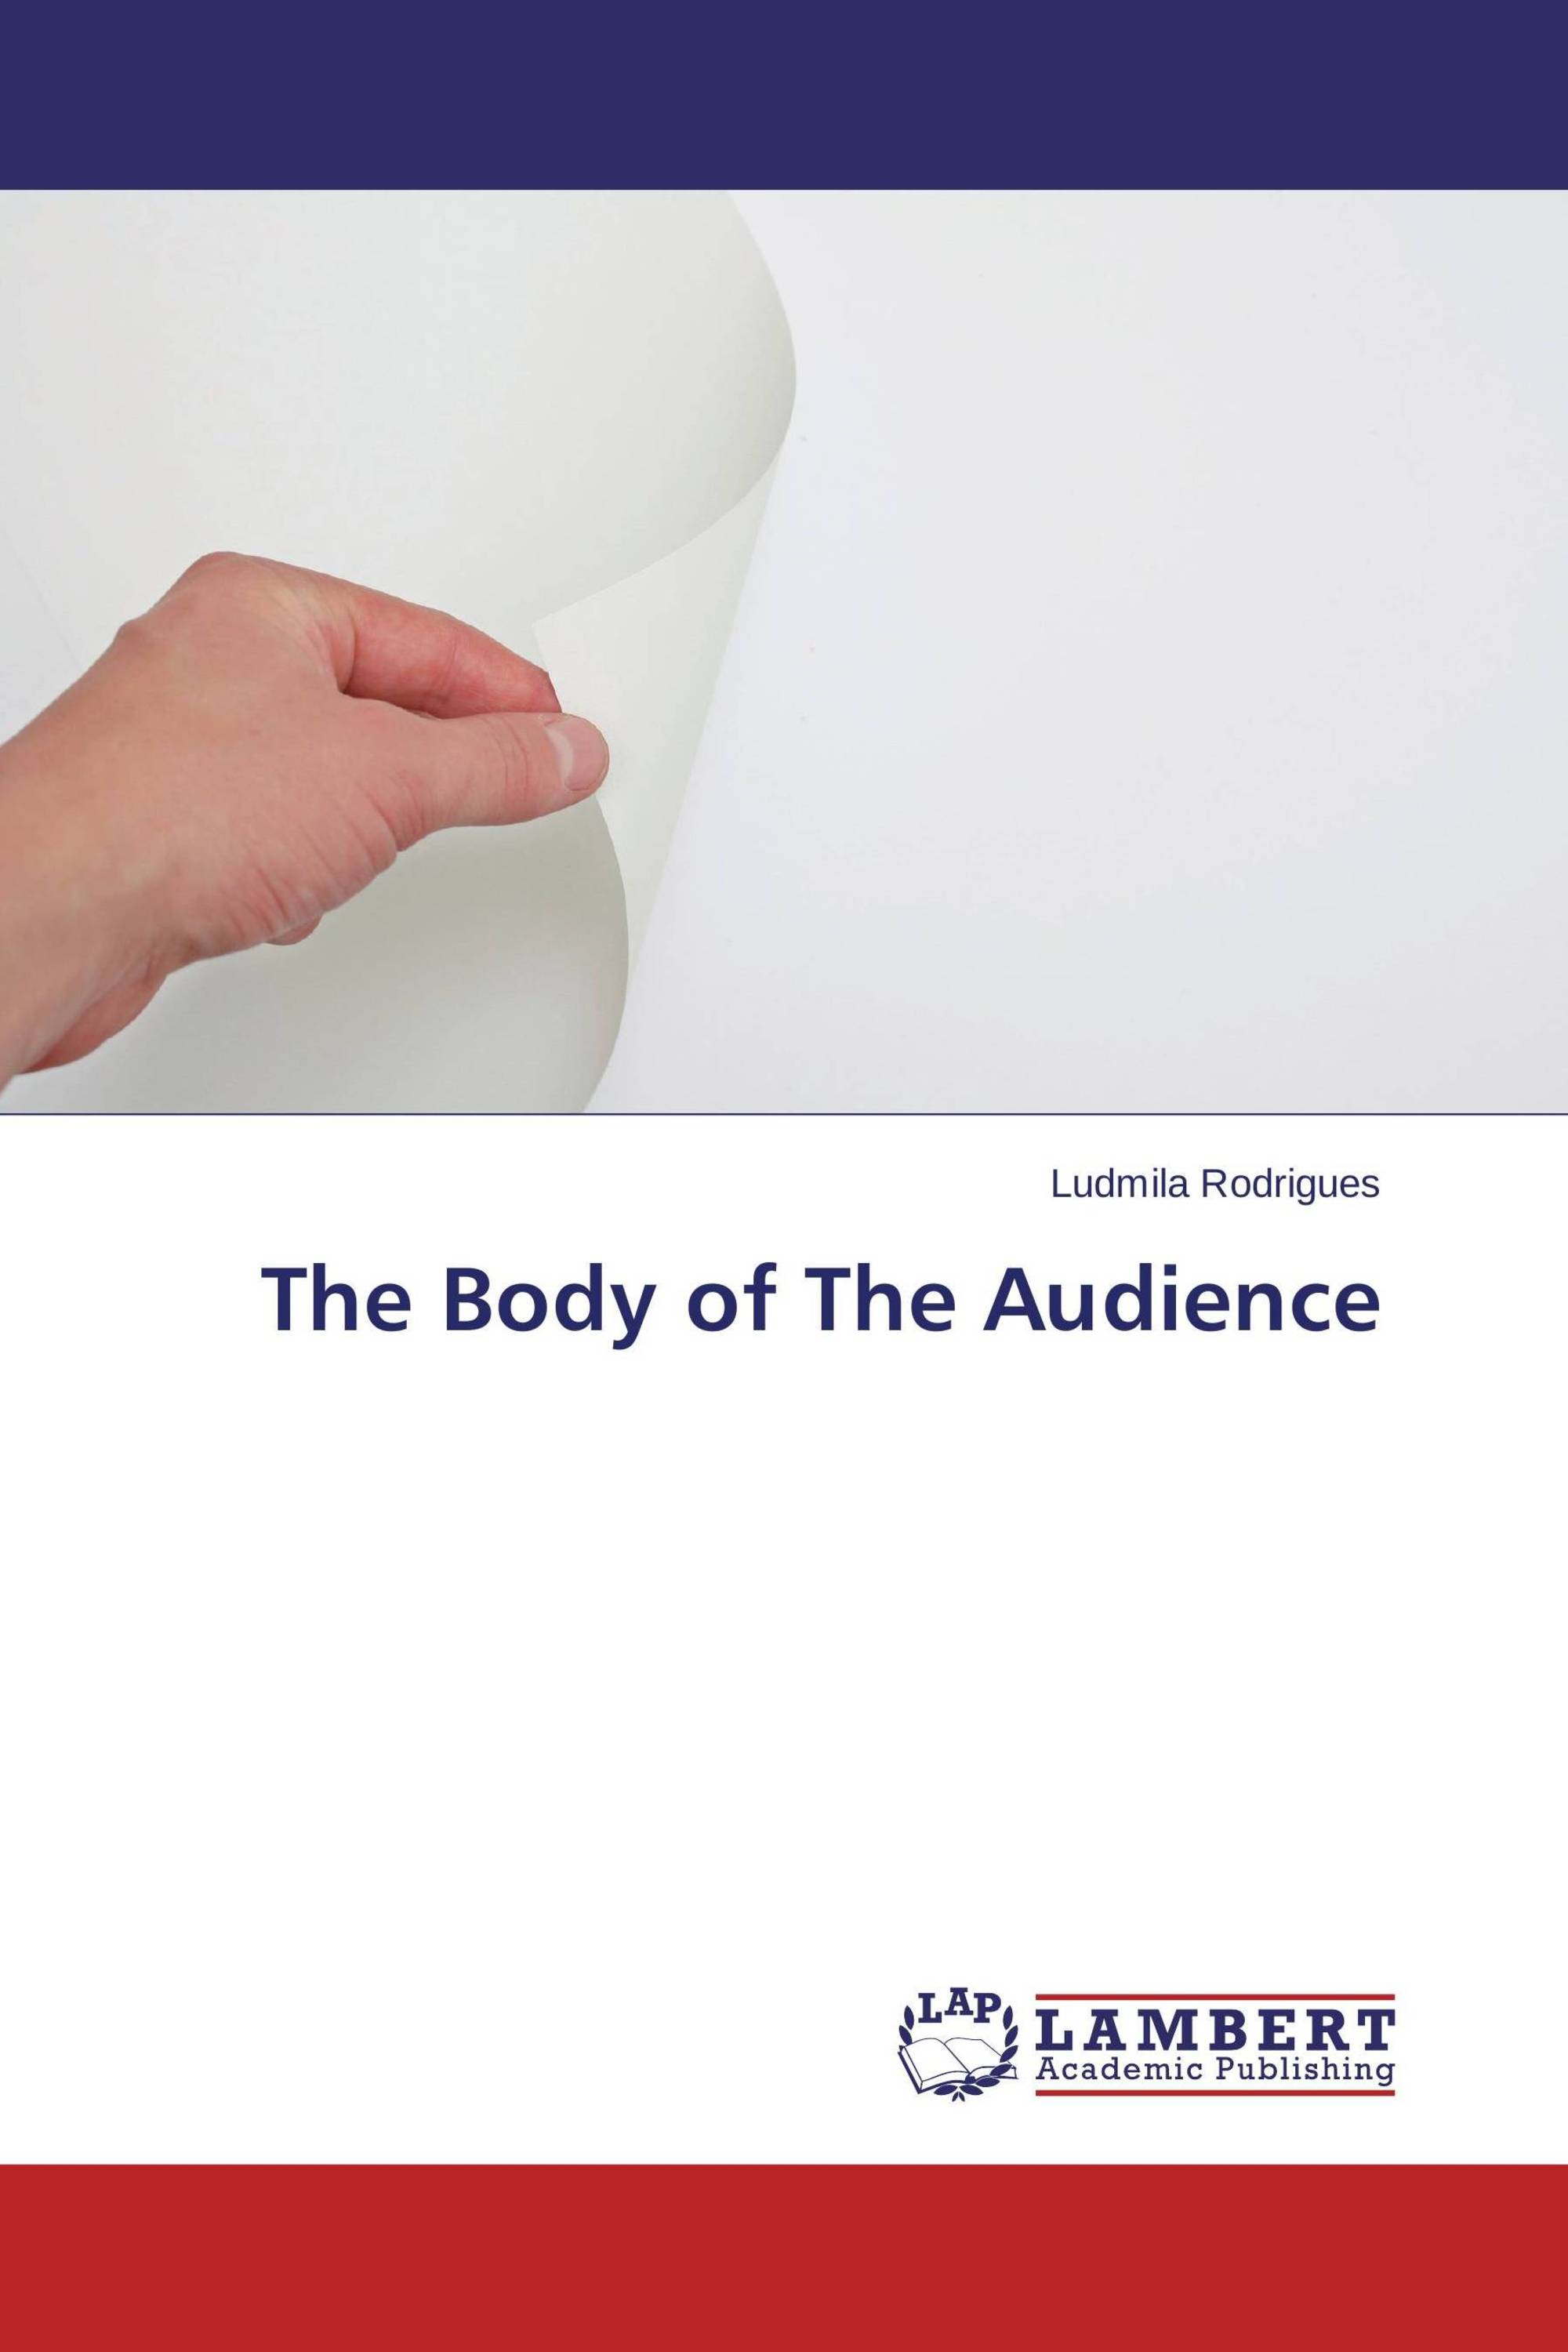 The Body of The Audience